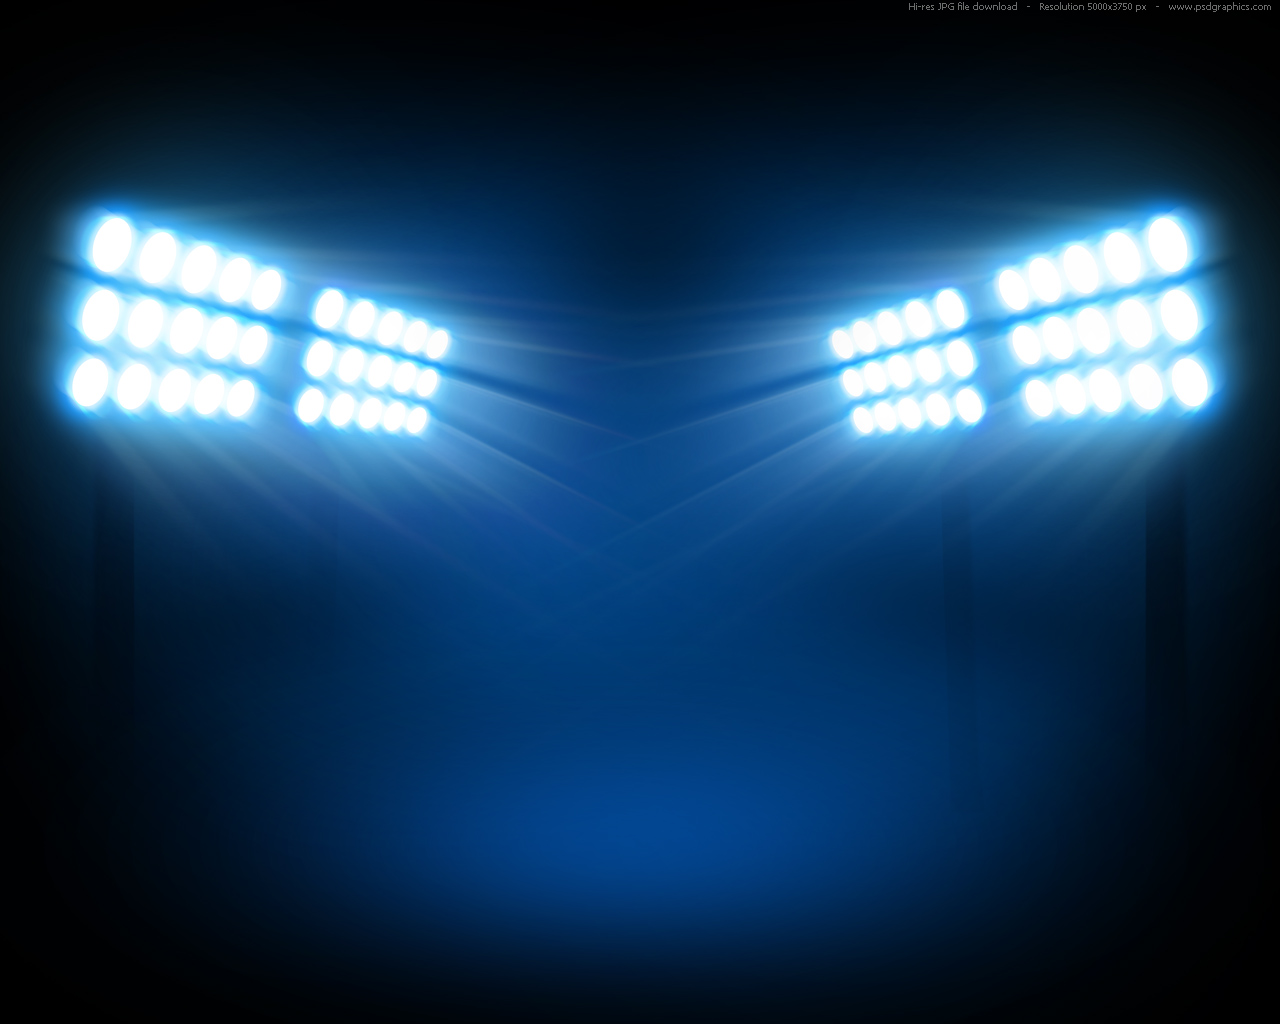 Stadium floodlights backgrounds